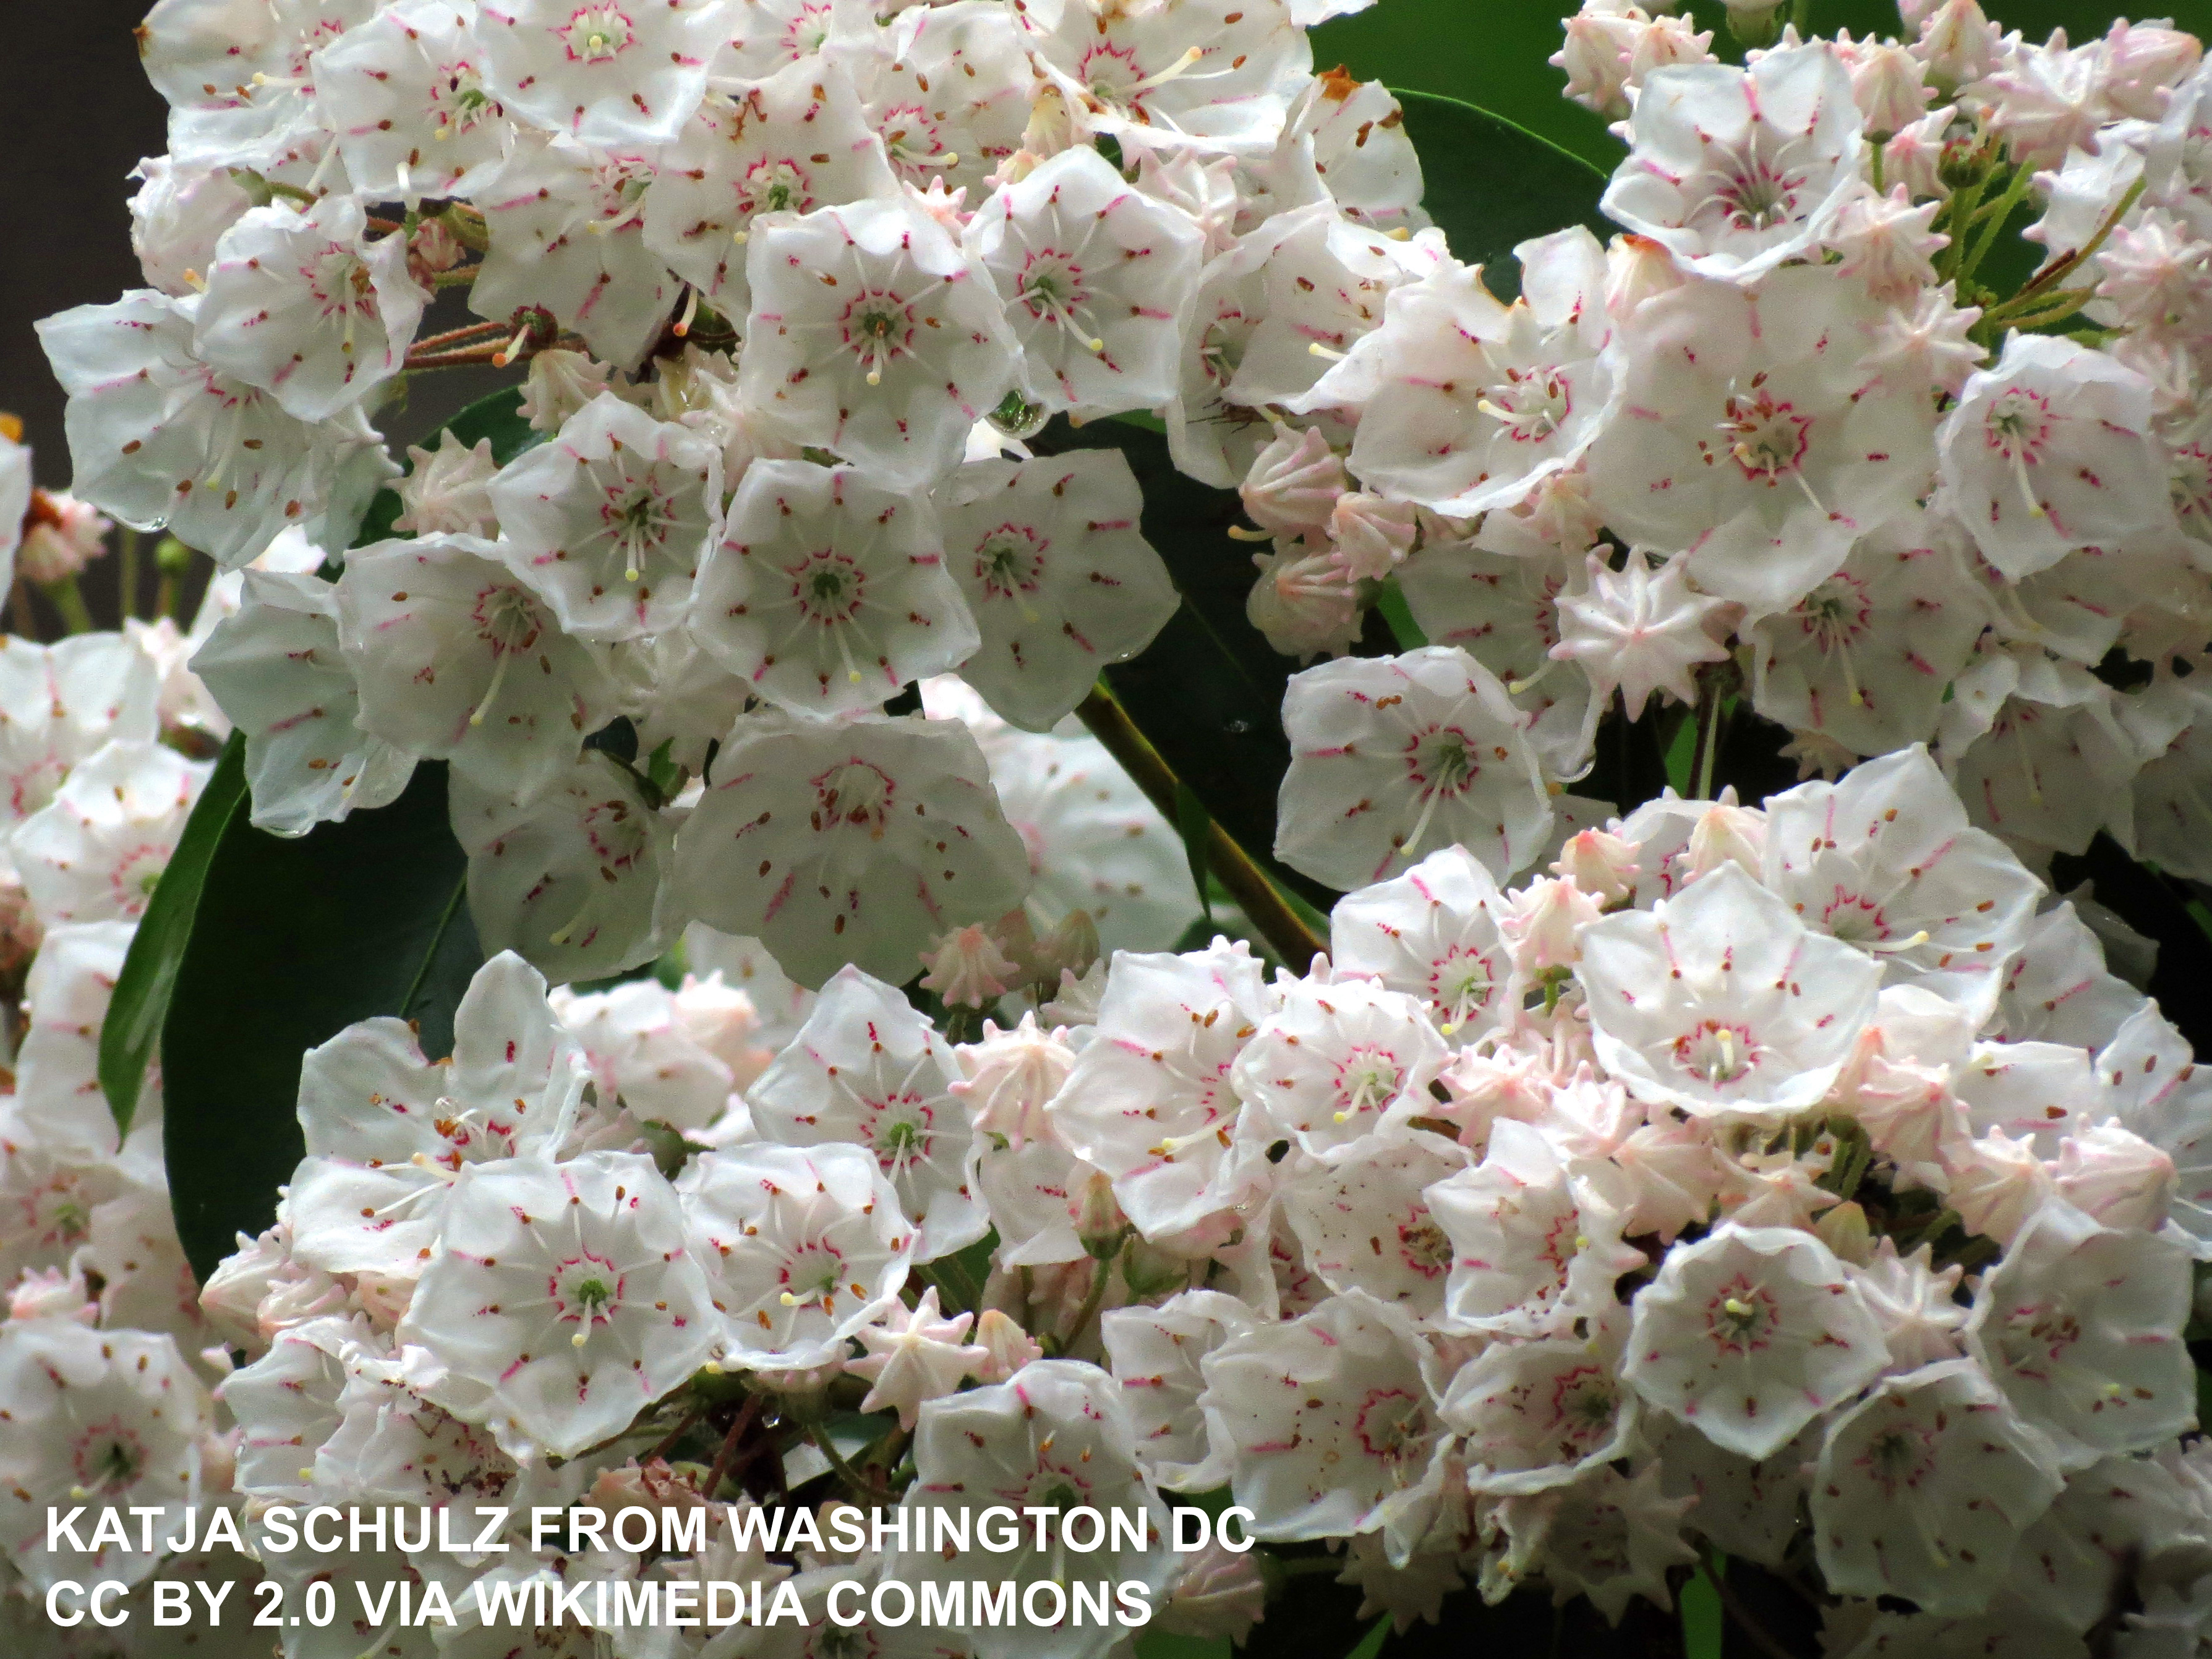 White and pink mountain laurel flowers